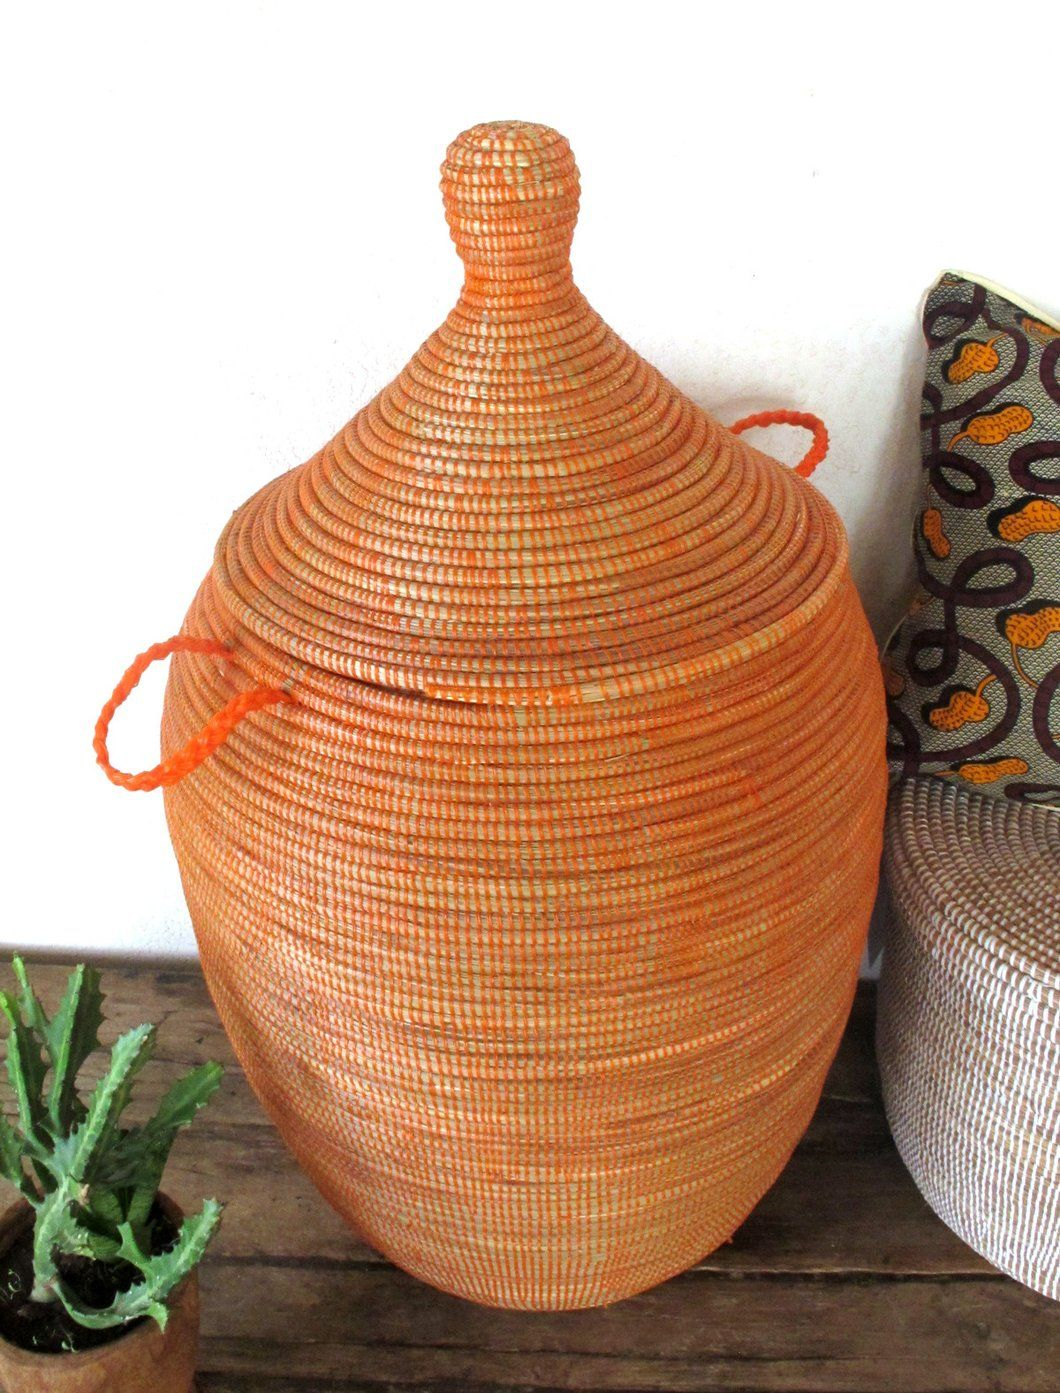 Handmade Laundry Basket Xl In Plain Orange Laundry Hamper Laundry Hamper Laundry Basket Wooden Basket